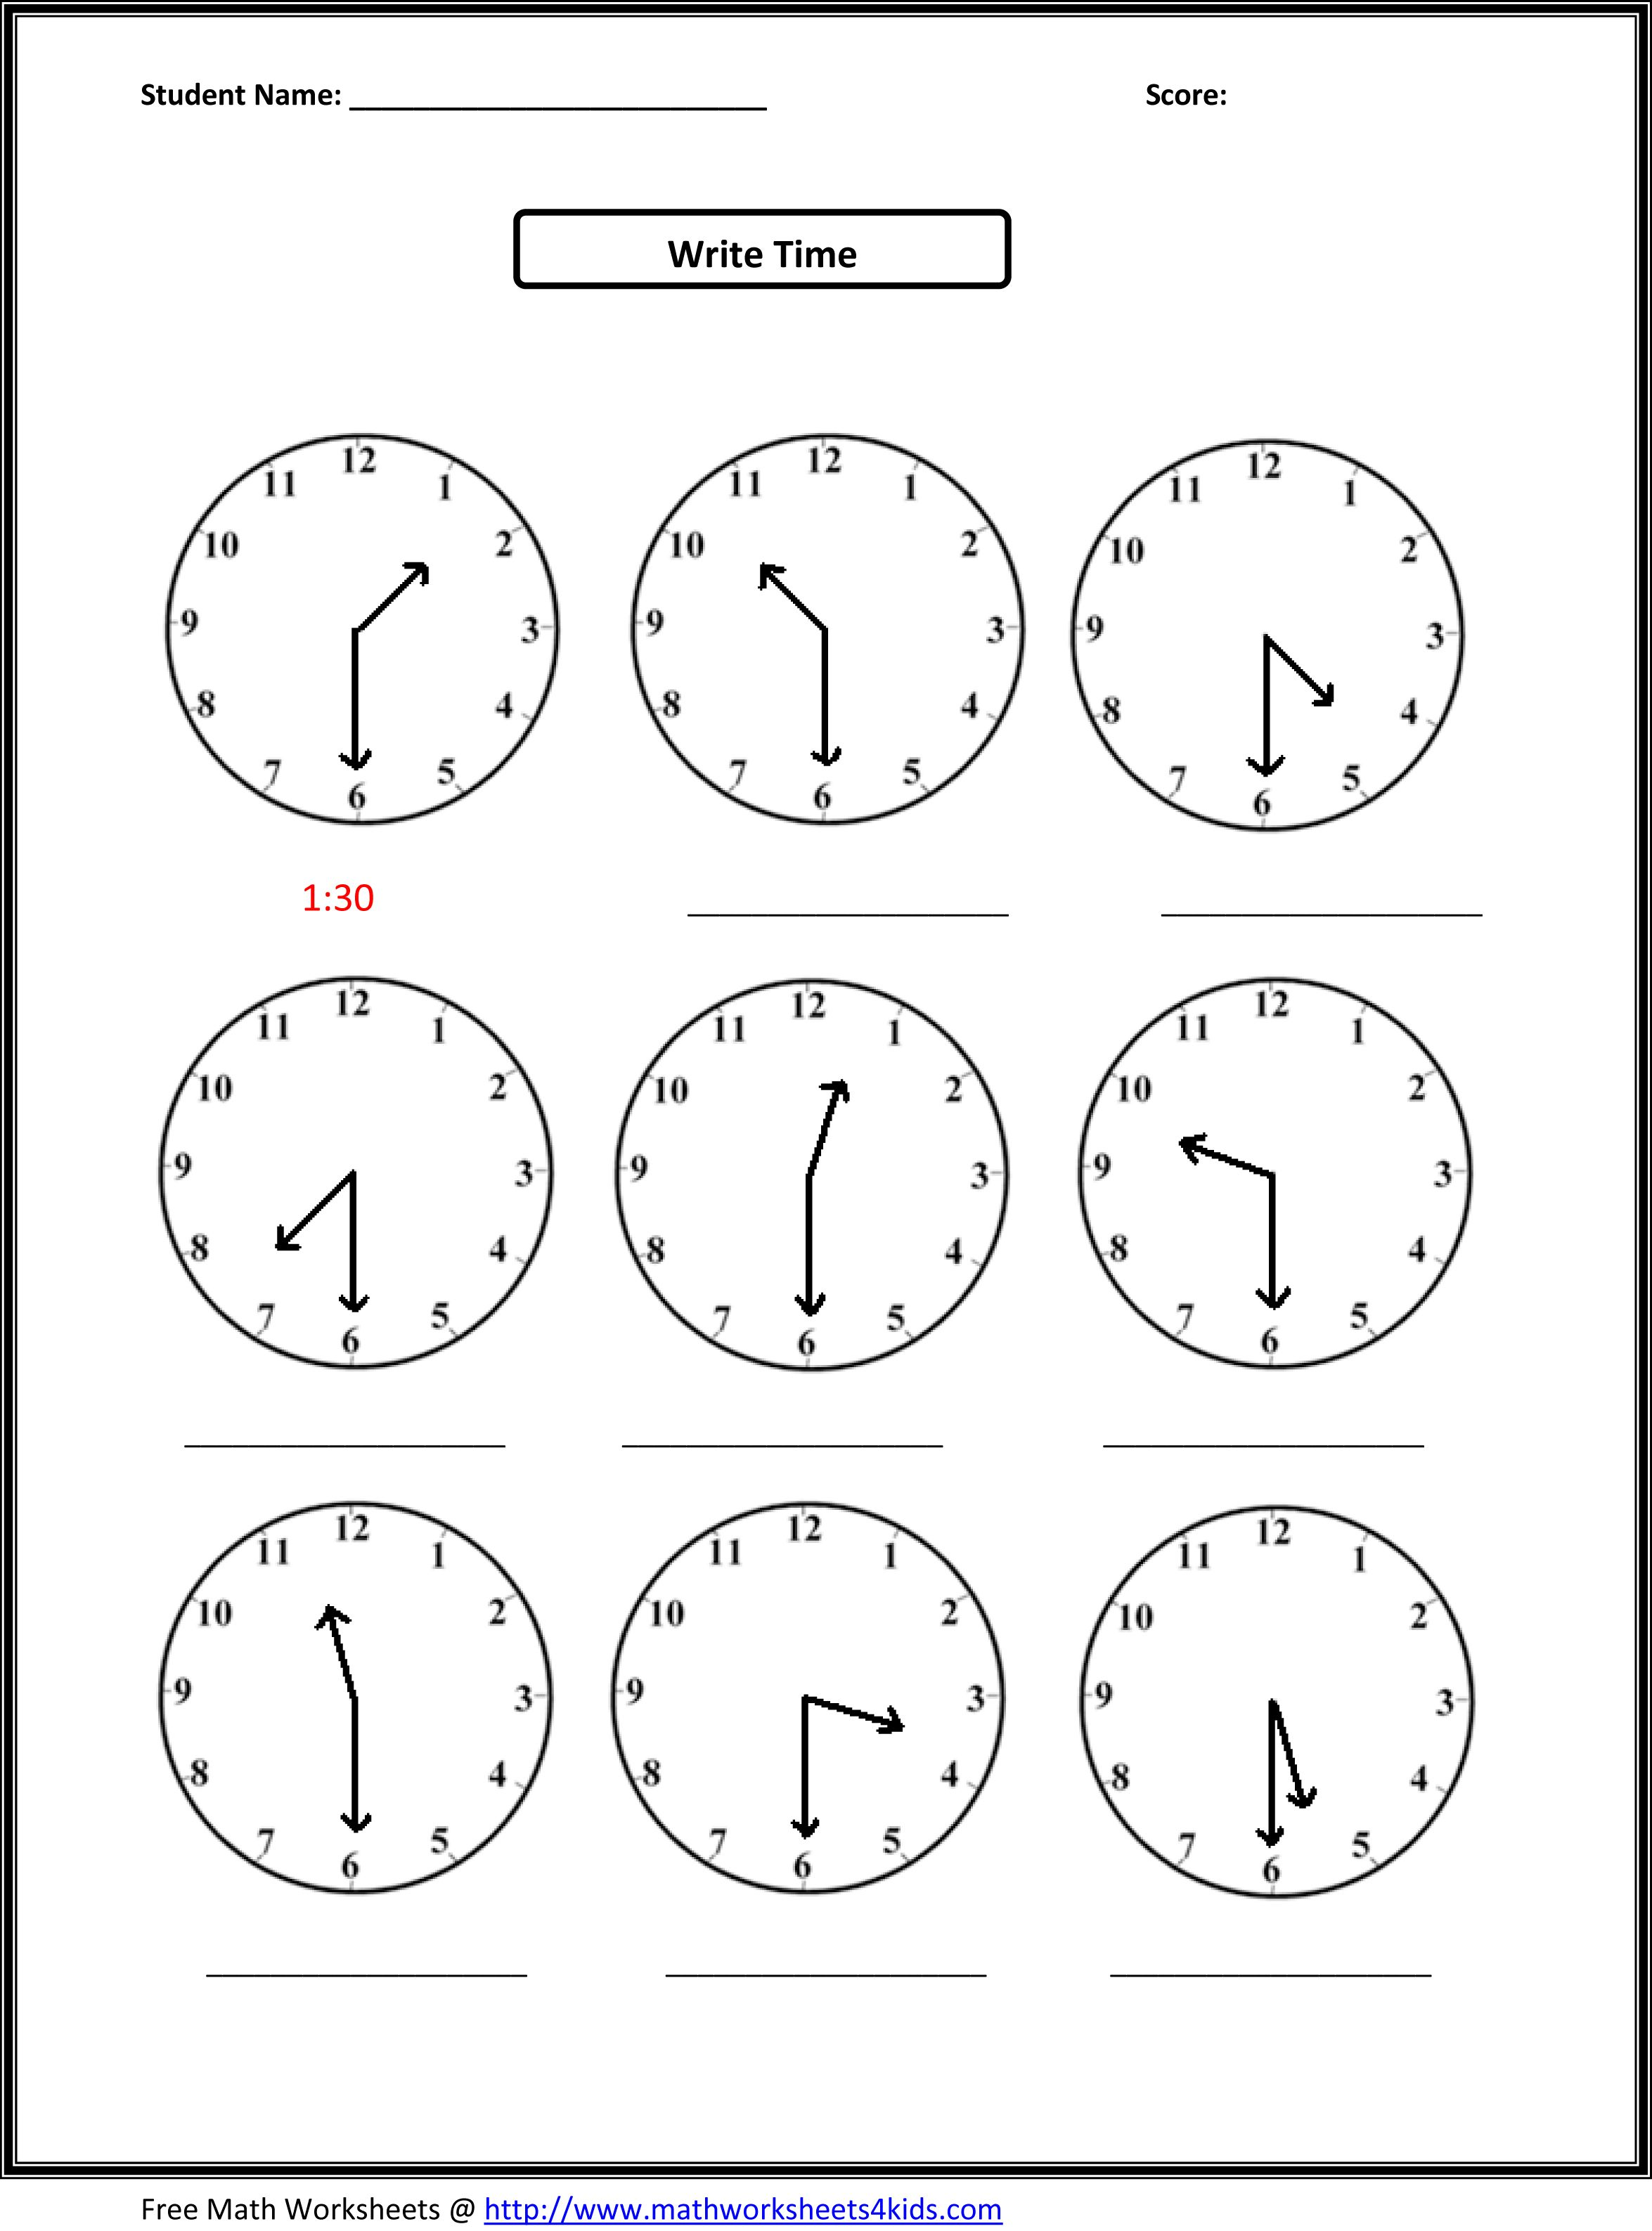 Proatmealus  Outstanding Worksheet On Time For Grade   Reocurent With Foxy Free Printable Telling Time Worksheets Nd Grade  Reocurent With Easy On The Eye Plotting Numbers On A Number Line Worksheet Also Zoo Animal Worksheets In Addition Bonding Worksheet  Lewis Structures And Music Theory Worksheets For Kids As Well As Crossword Puzzle Worksheet Additionally Irs Worksheet In Pub  From Reocurentcom With Proatmealus  Foxy Worksheet On Time For Grade   Reocurent With Easy On The Eye Free Printable Telling Time Worksheets Nd Grade  Reocurent And Outstanding Plotting Numbers On A Number Line Worksheet Also Zoo Animal Worksheets In Addition Bonding Worksheet  Lewis Structures From Reocurentcom